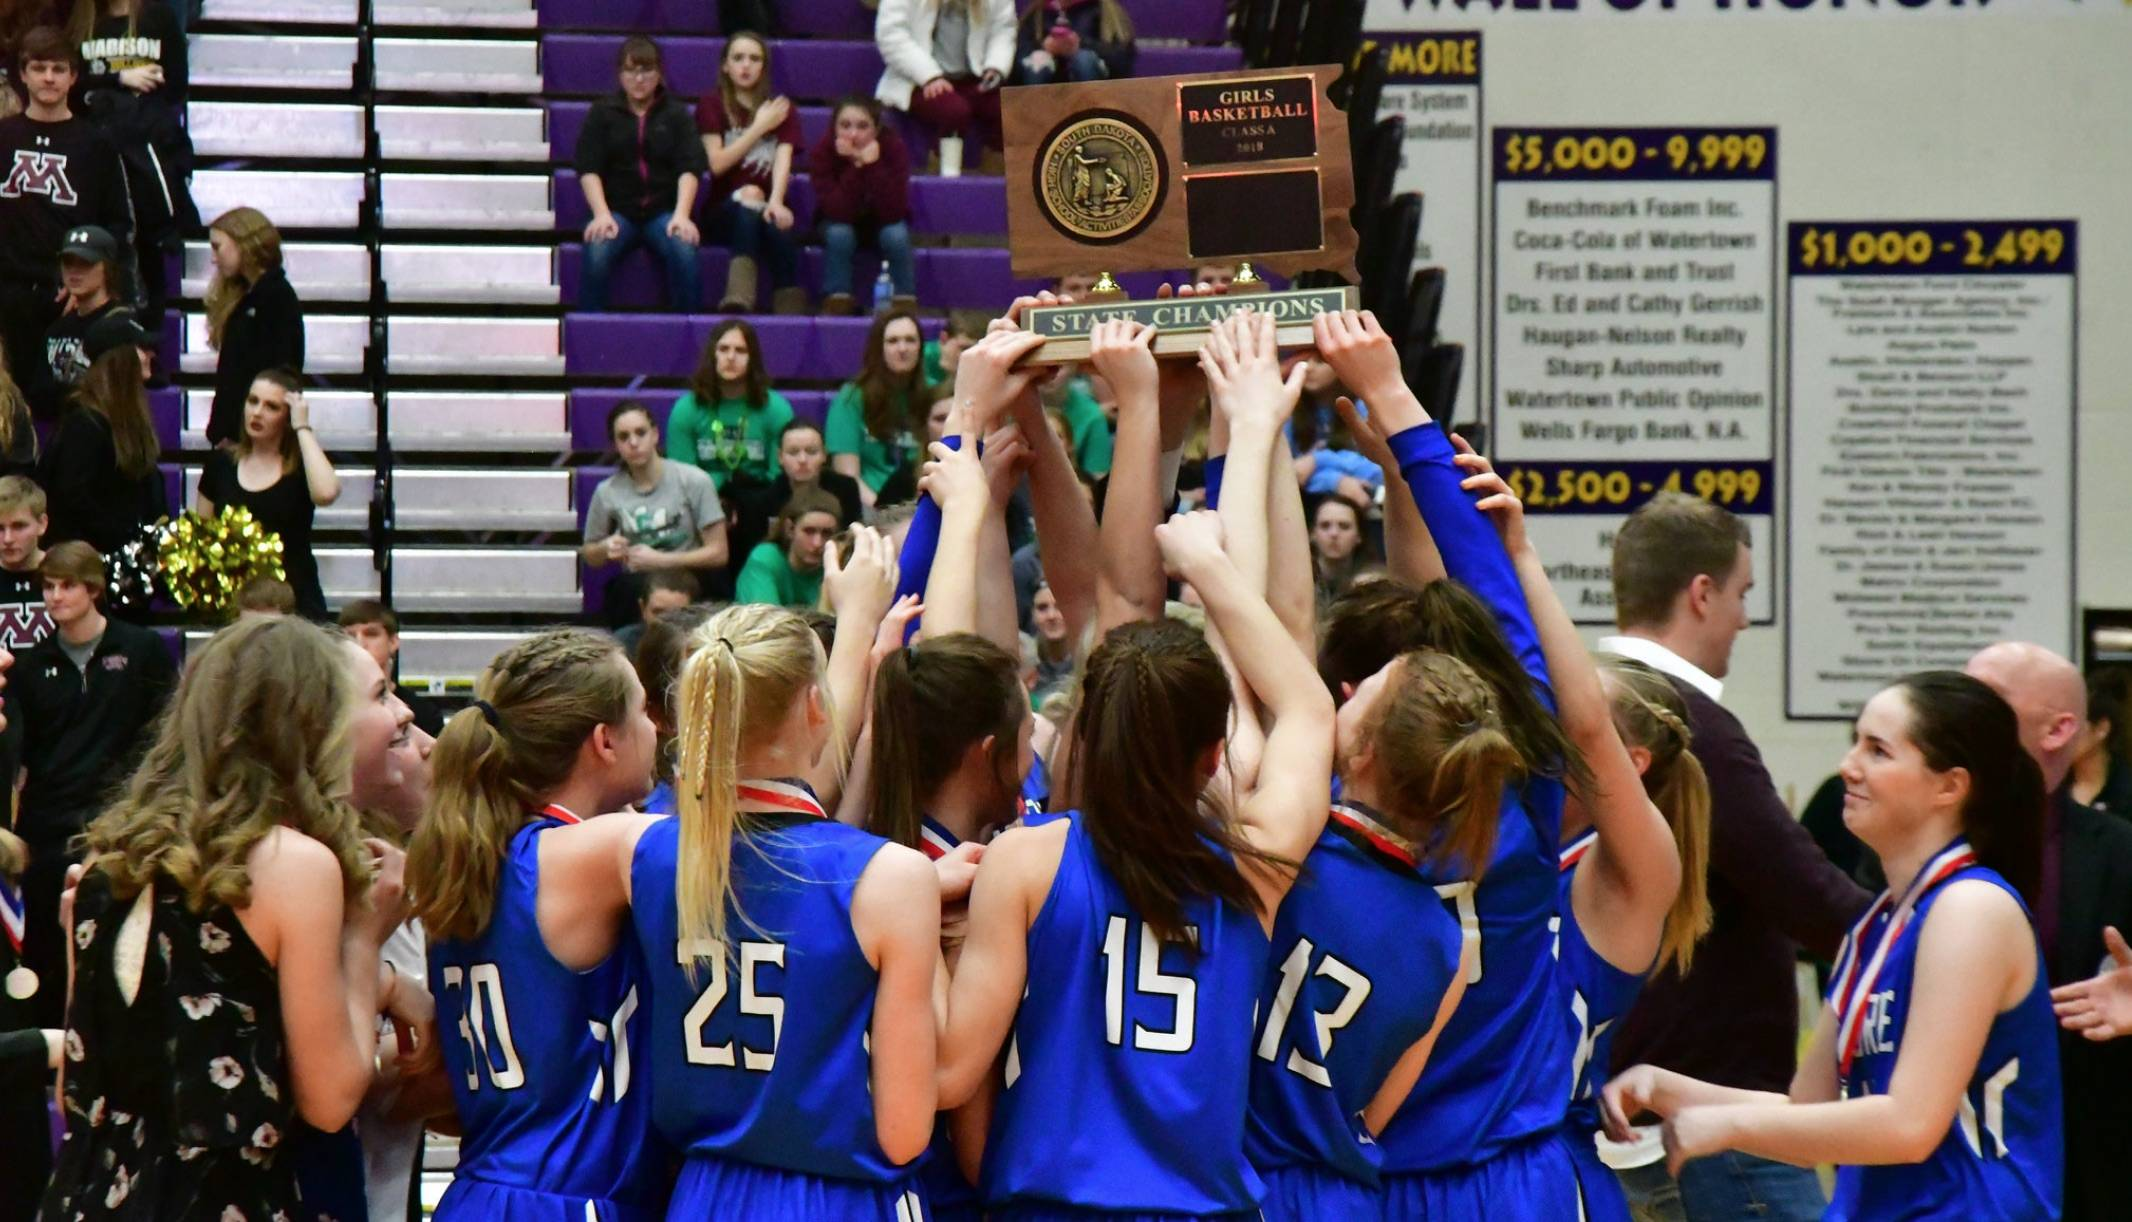 - Has it really been five consecutive Class A state titles for Brandon Kandolin's Lady Cavaliers?Kind of a slow uninspiring start for STM with two wins over Nebraska schools and a 48-37 win over a 3-3 Hill City team, in Hill City. The Madison girls look a little down this year, but that Aberdeen Roncalli game on Saturday night from the Civic Center….that should be a good one.